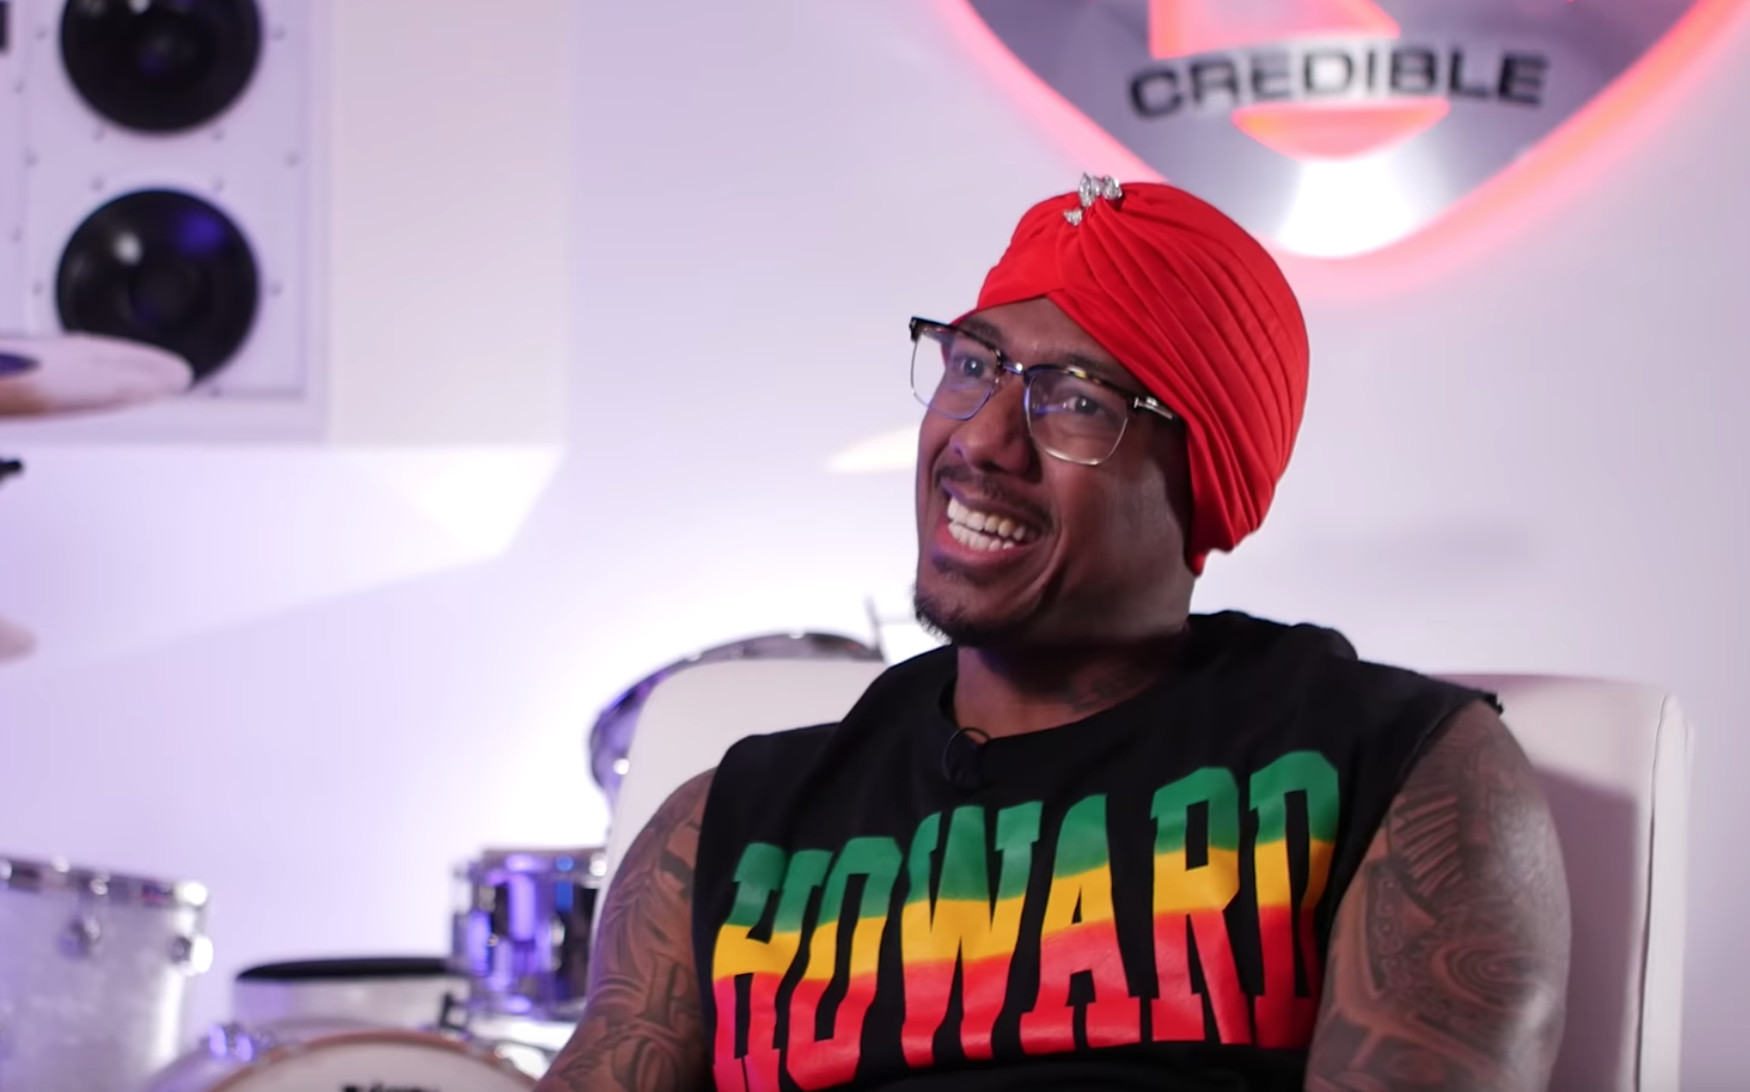 Nick Cannon Doubles Down on 'Django Unchained' Comparison of Eminem and 50 Cent